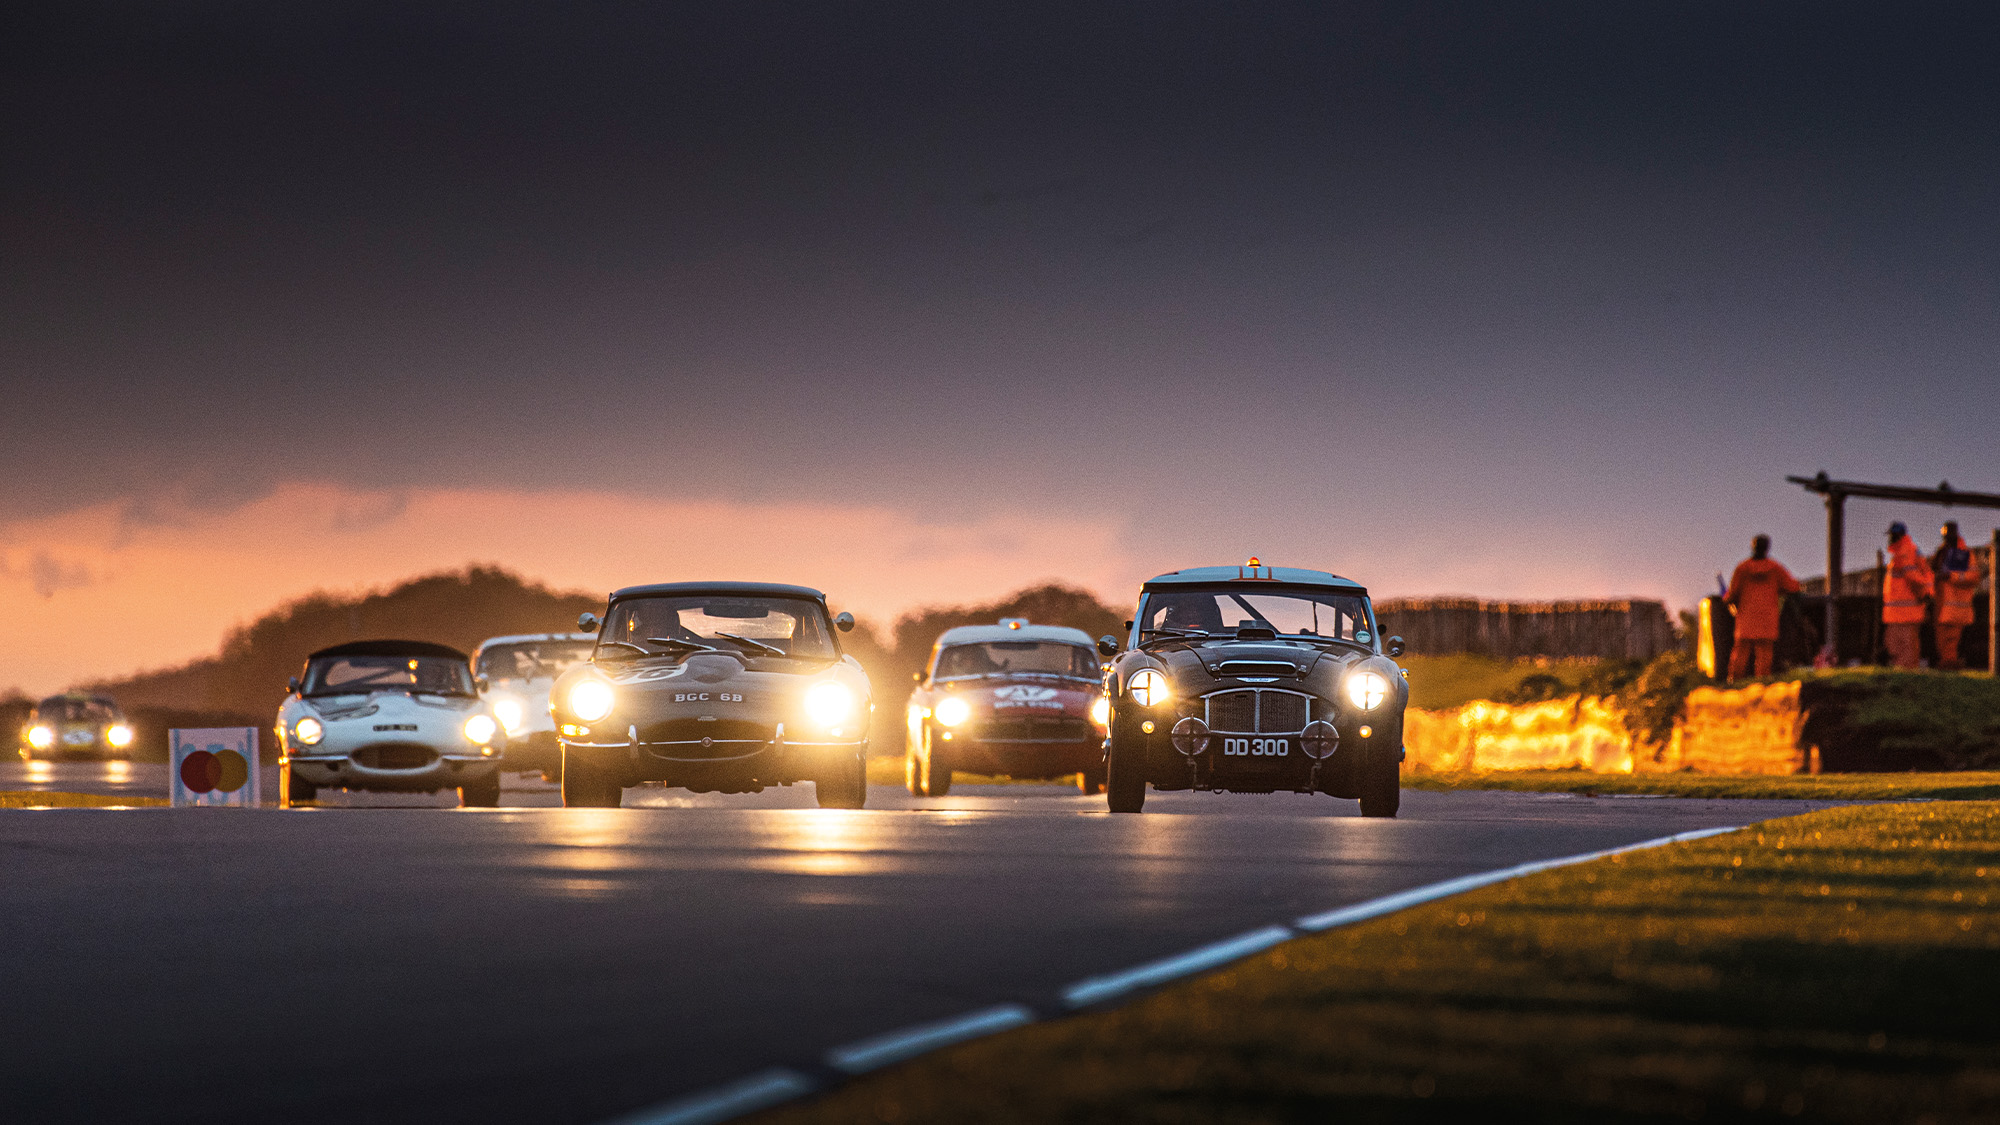 Stirling Moss Memorial Trophy race in the dusk at Goodwood SpeedWeek